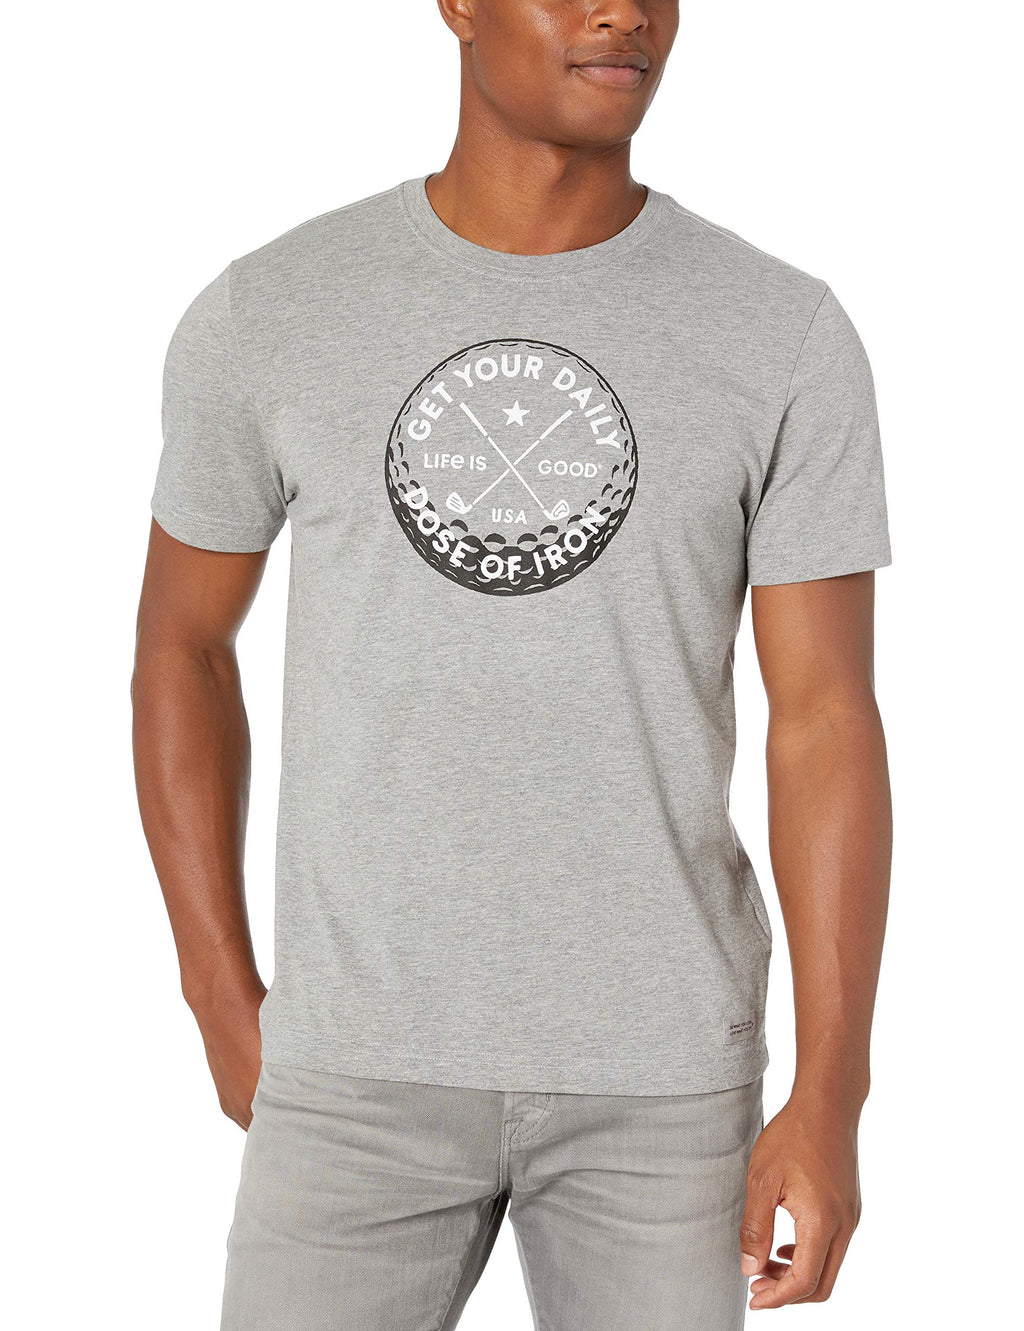 Life is good Men's Mens Crusher T-shirt, Heather Gray, Large